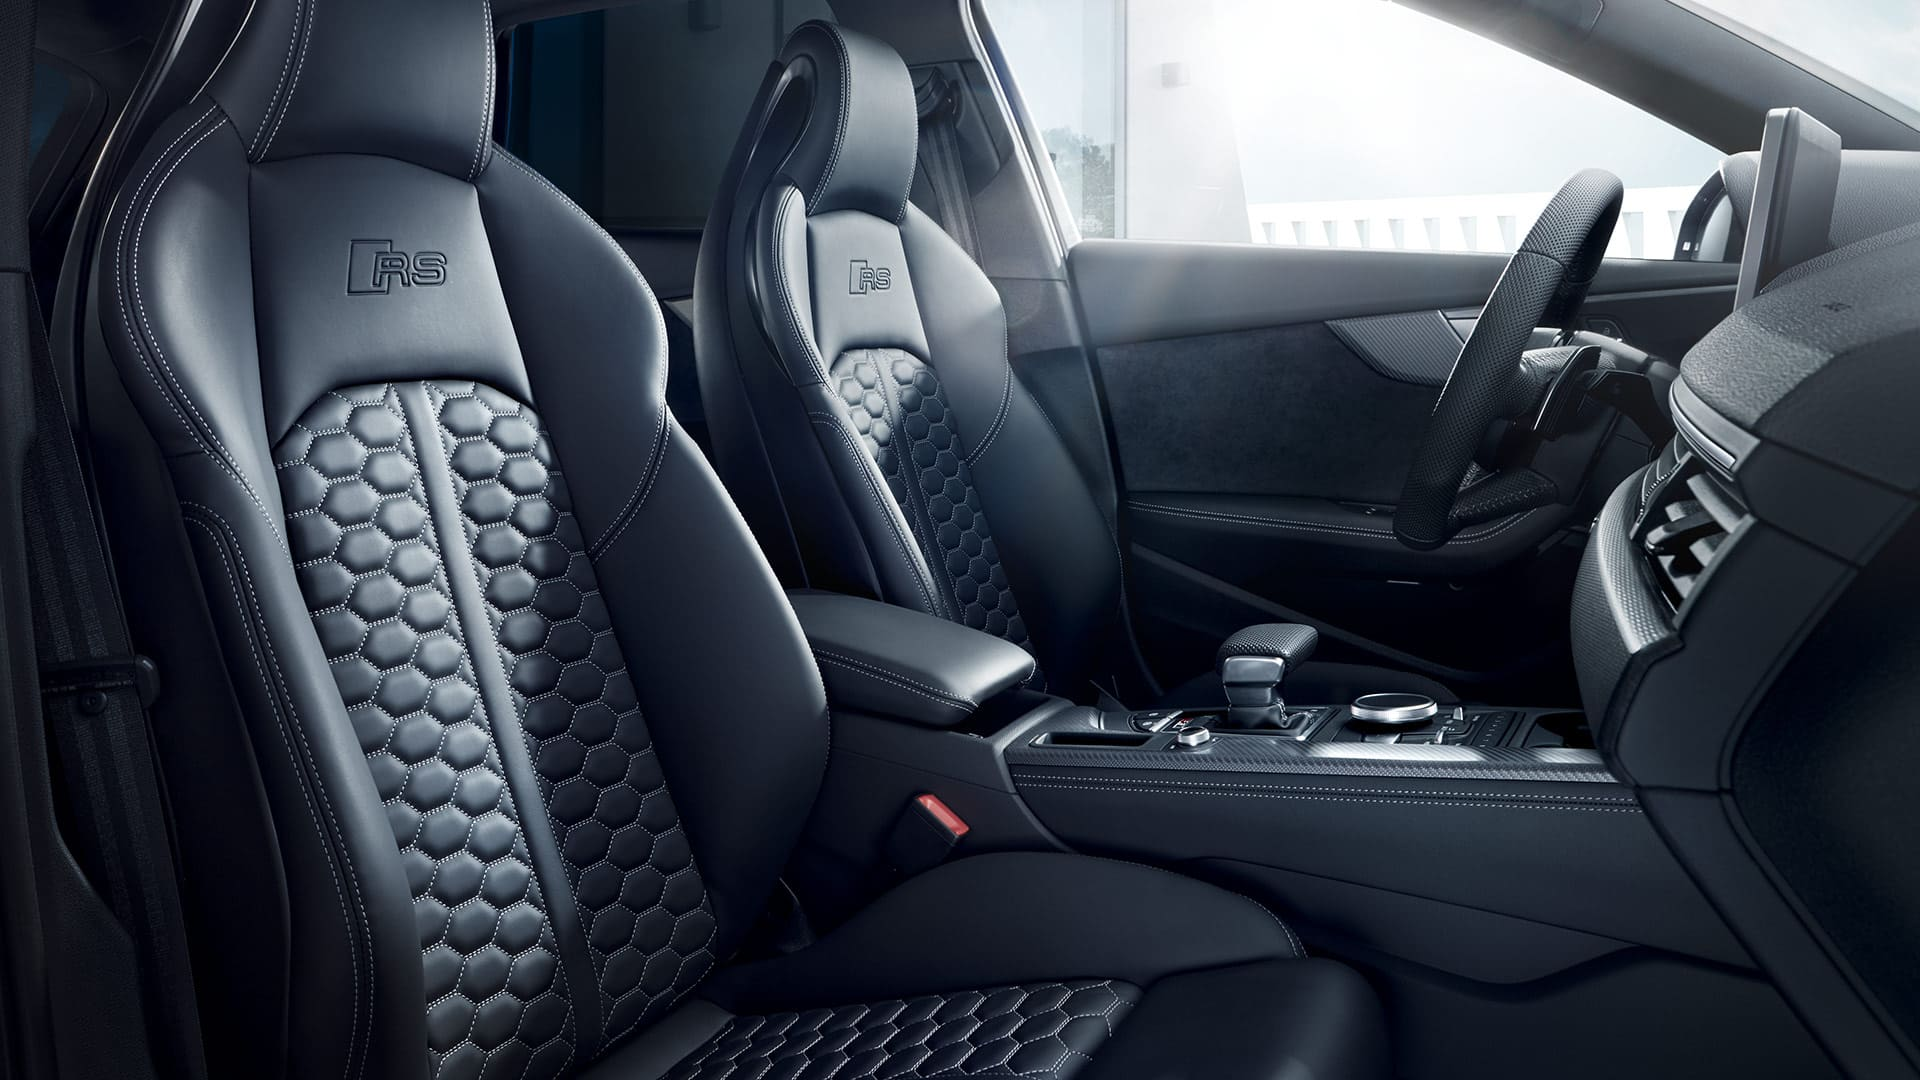 The interior of the Audi RS 4 Avant is sporty and practical.